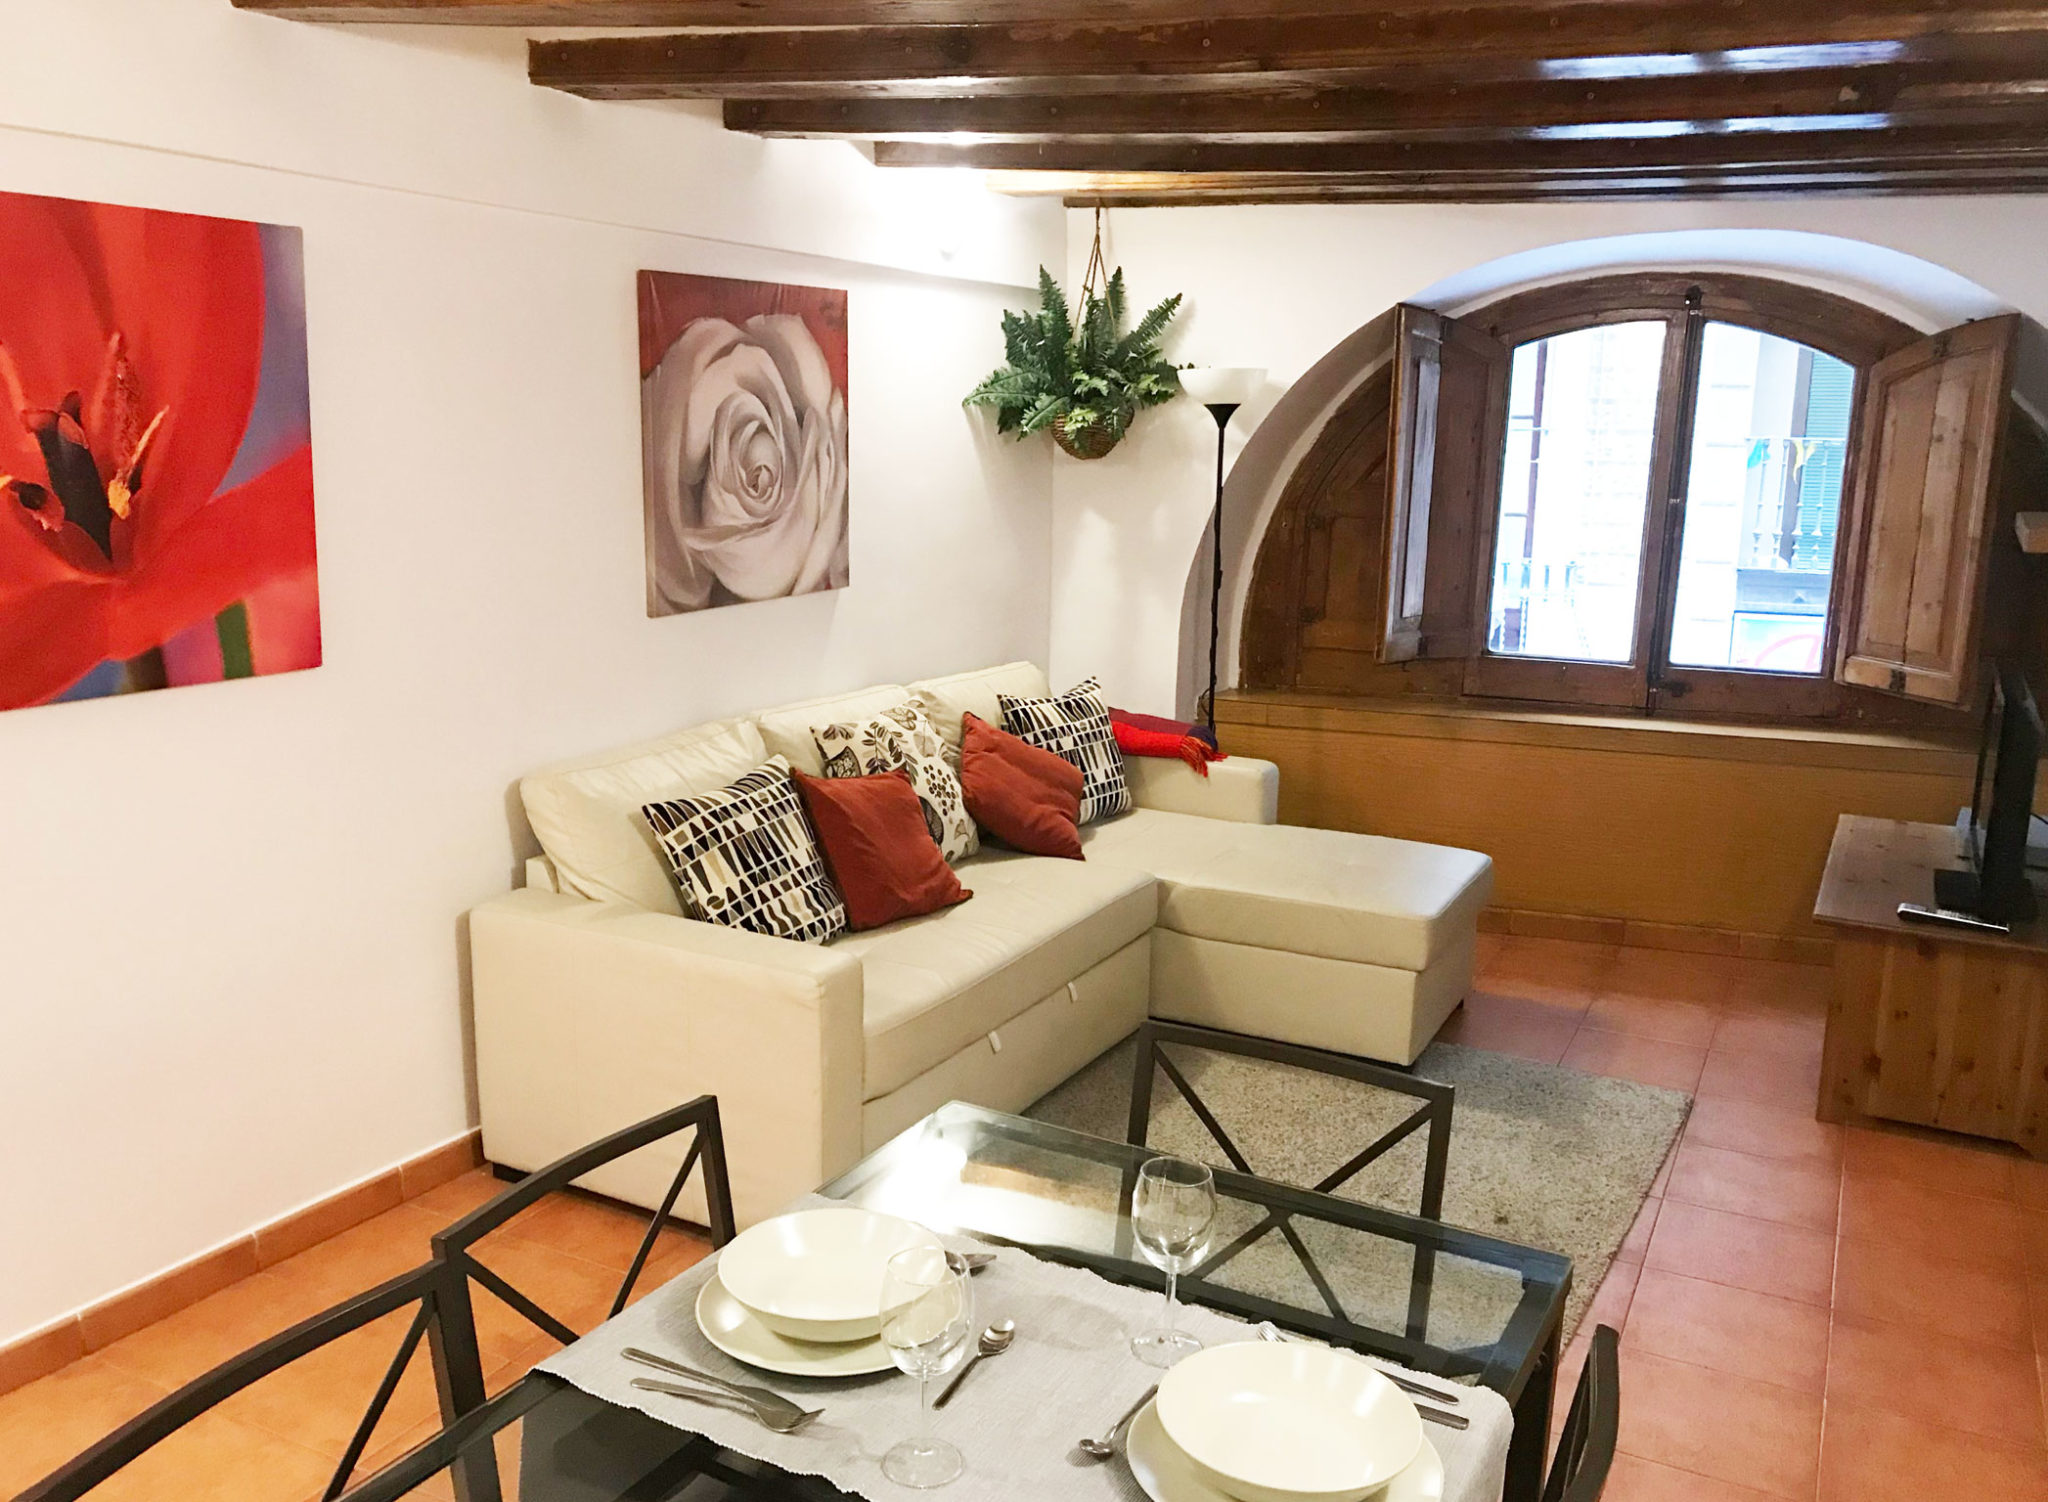 Orchid TOP BARCELONA APRTMENTS Appartamento 3 camere Barcellona